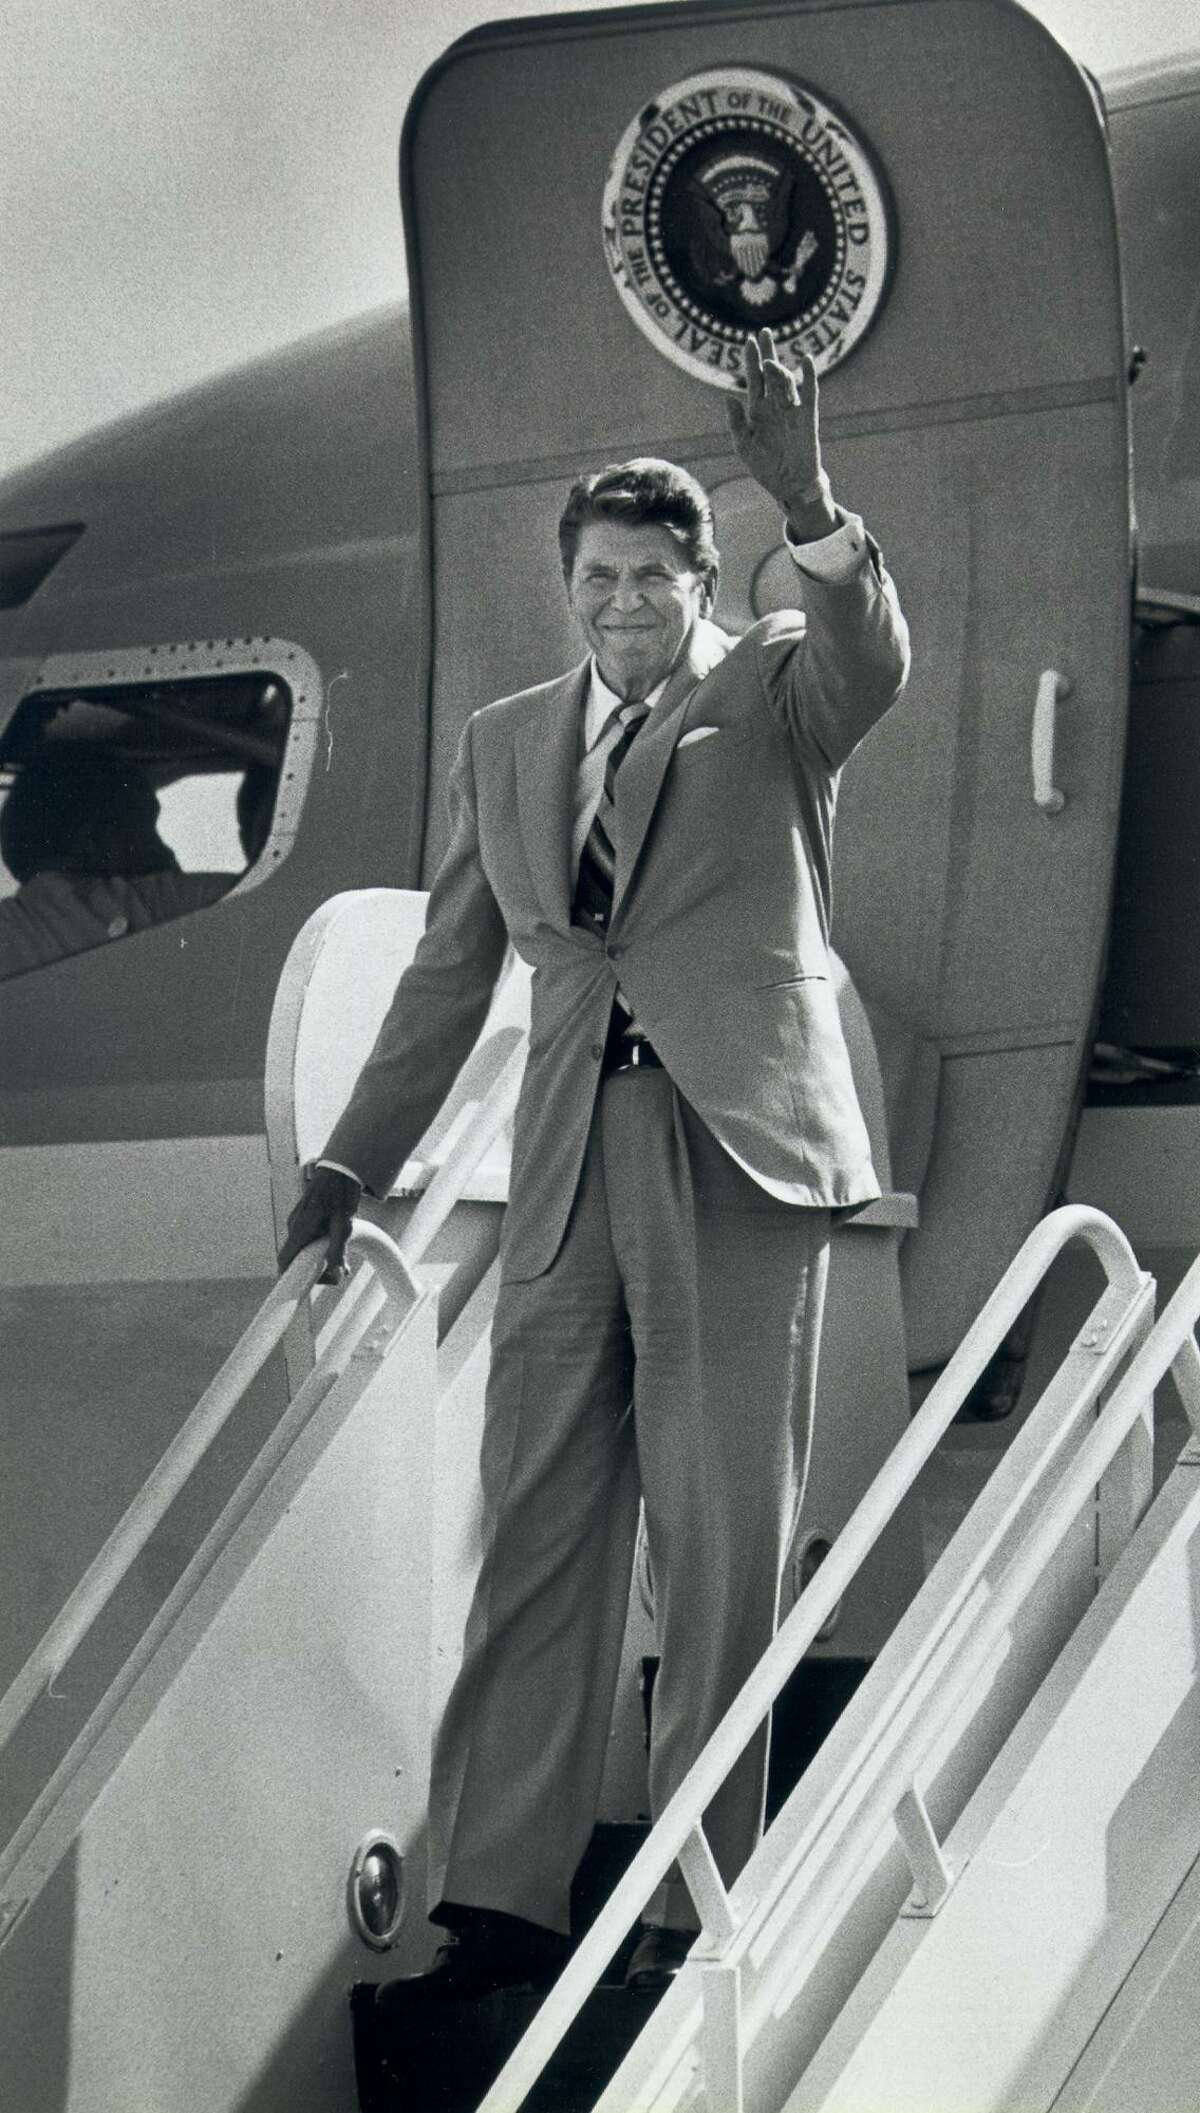 President Ronald Reagan waved to the crowd during a 1984 visit to San Antonio.